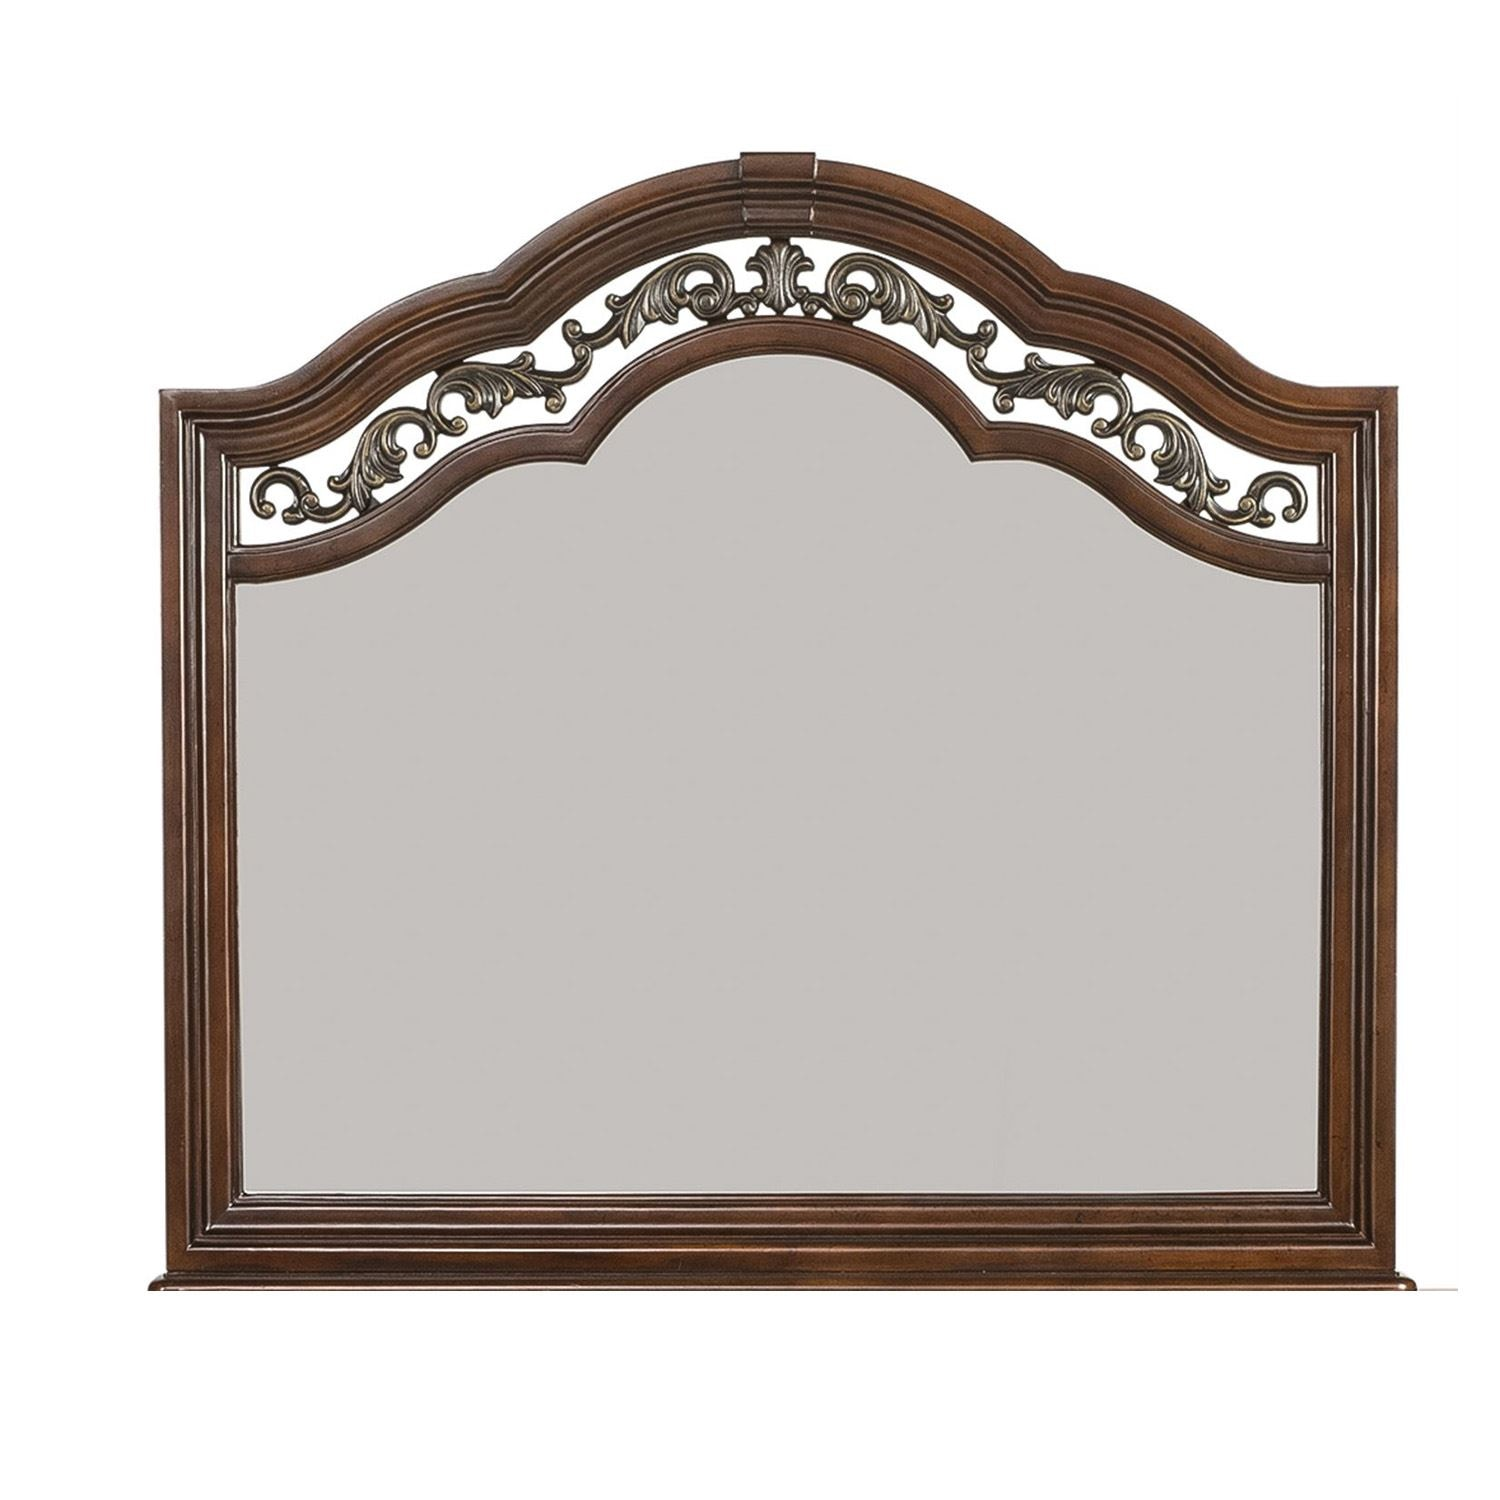 Liberty Furniture Accessories Mirror 737 BR51 At Slone Brothers